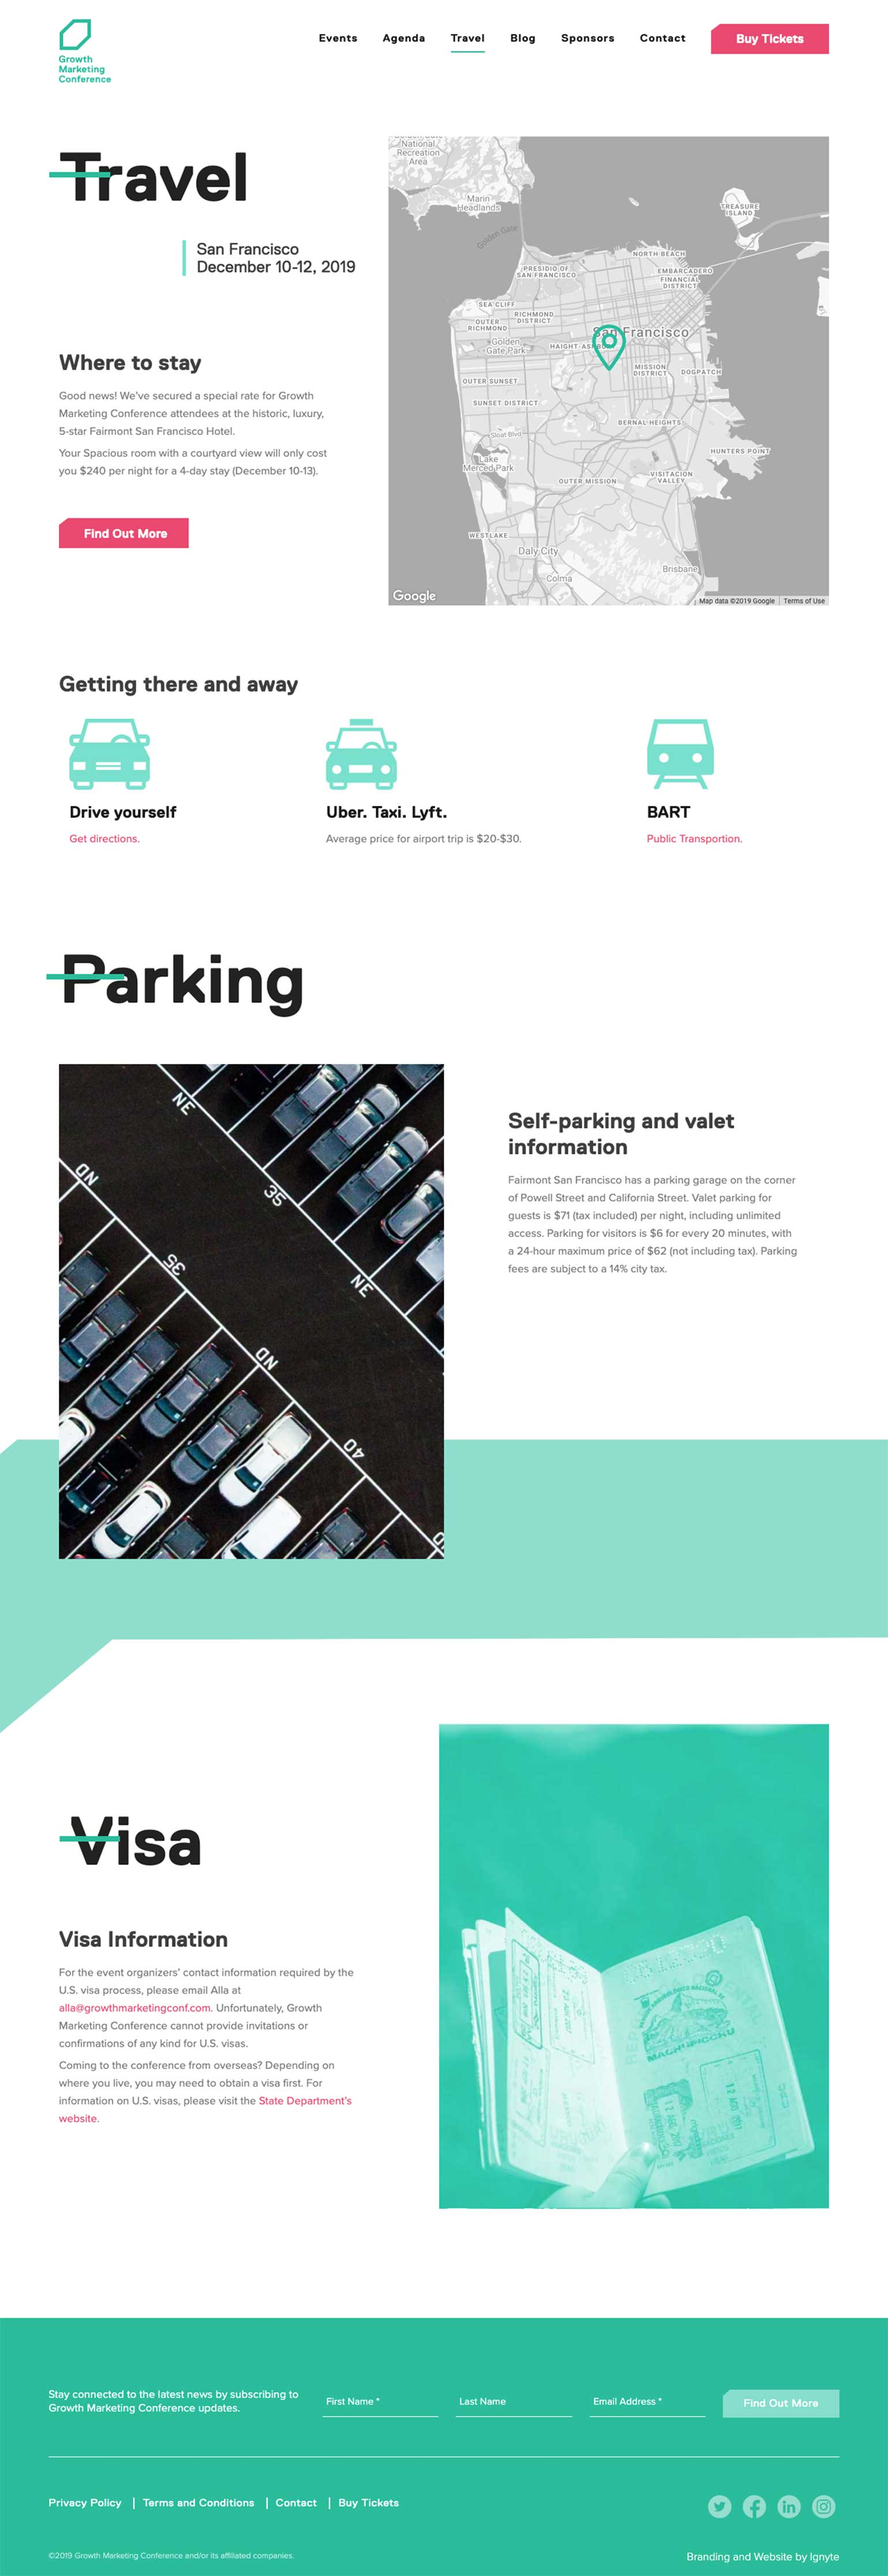 Ignyte-branding-agency-web-design-growth-marketing-conference-travel-page-V3